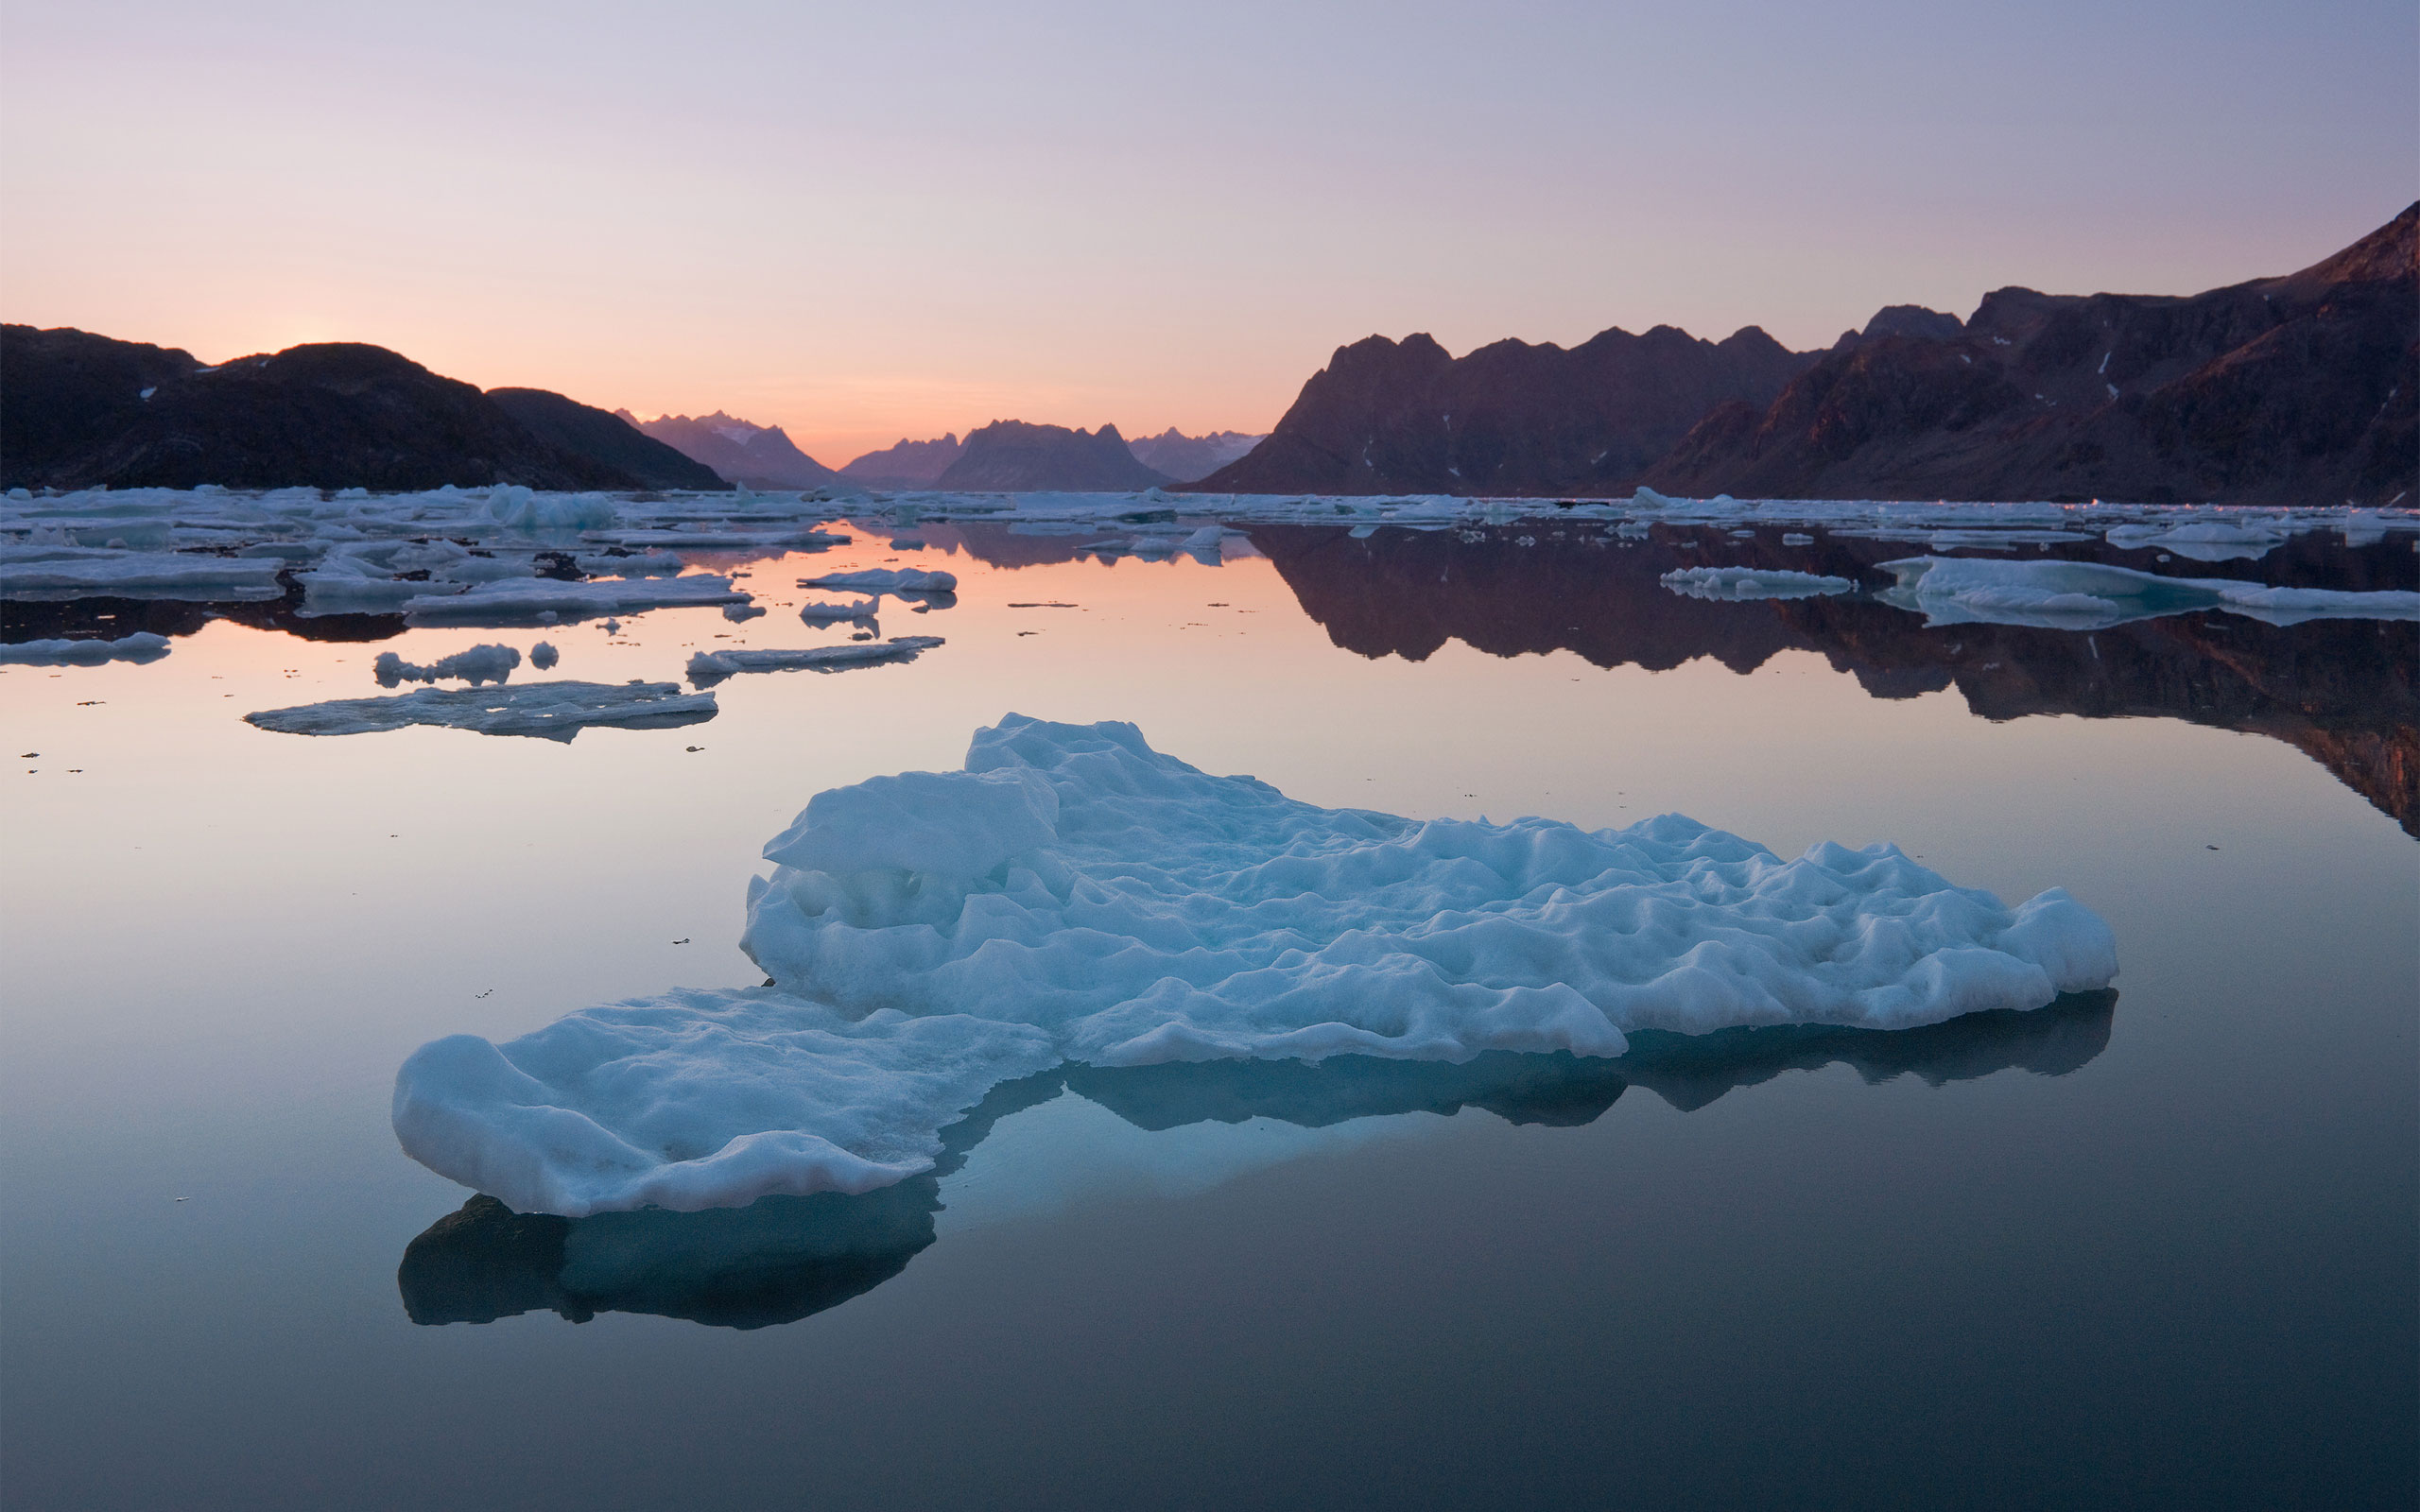 View from Kulusuk Island over Torsuut Tunoq sound toward stunning Angmagssalik fjord at dusk. Southeastern Greenland. - Greenland-Iceberg-Factory-1 - Mike Reyfman Photography